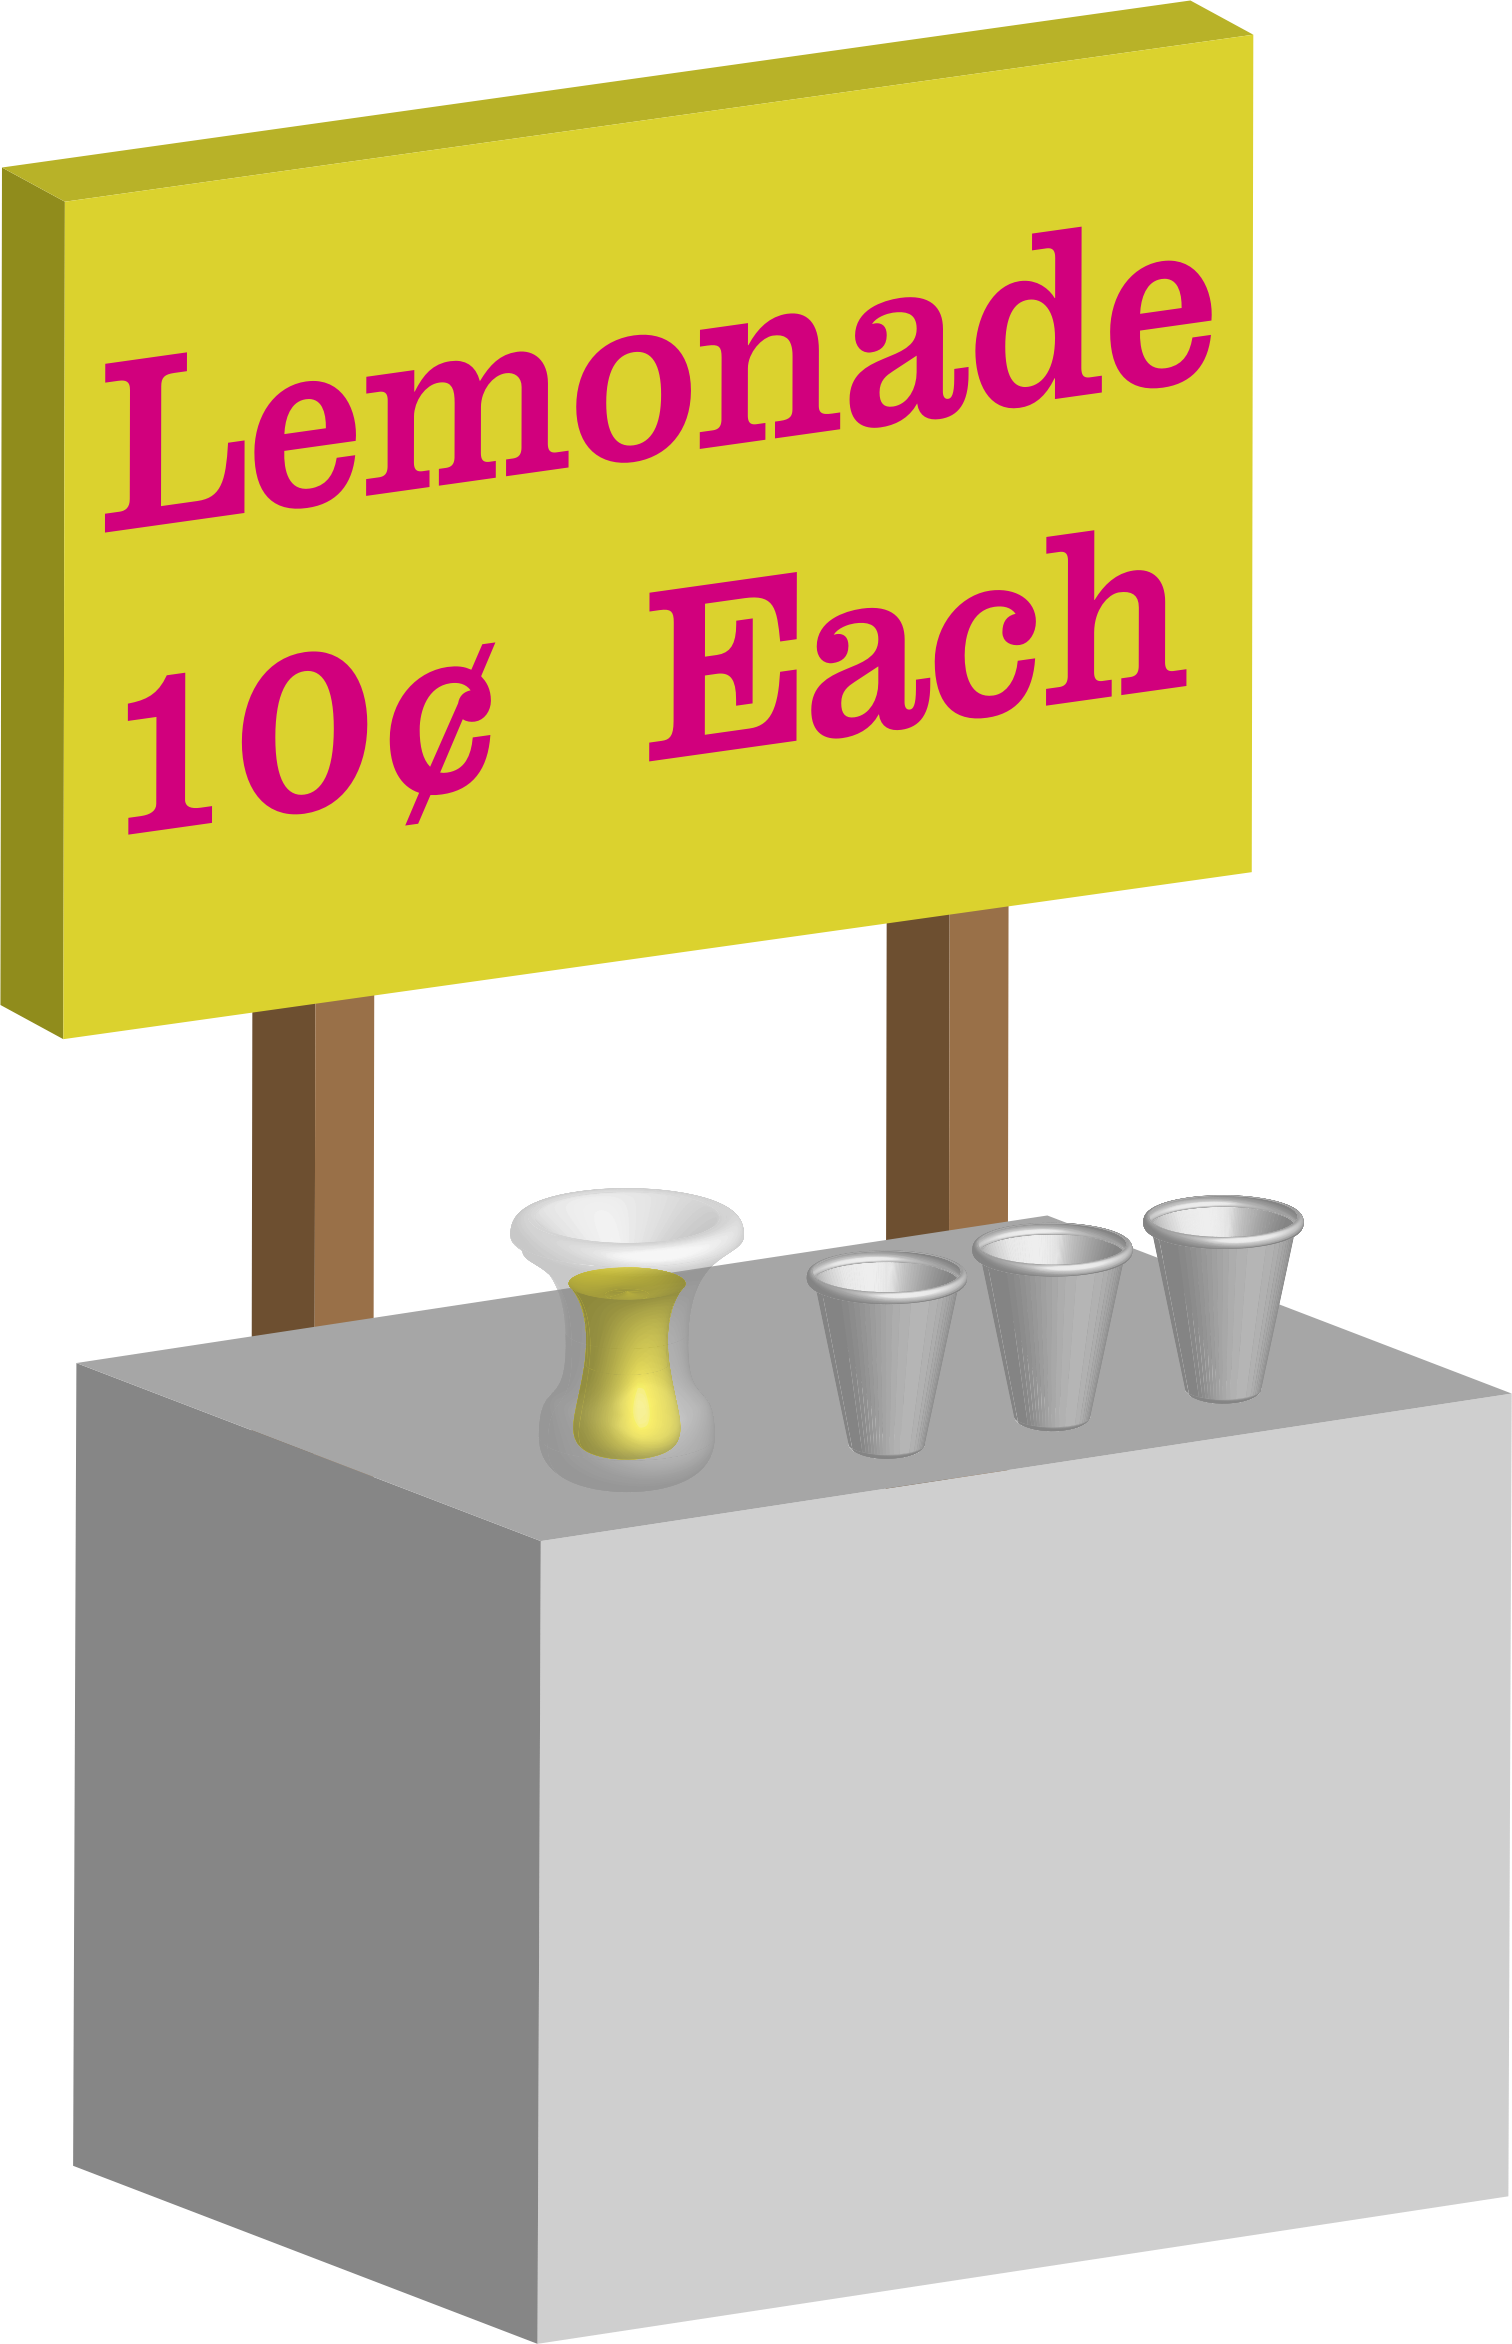 Lemonade Stand by jhnri4